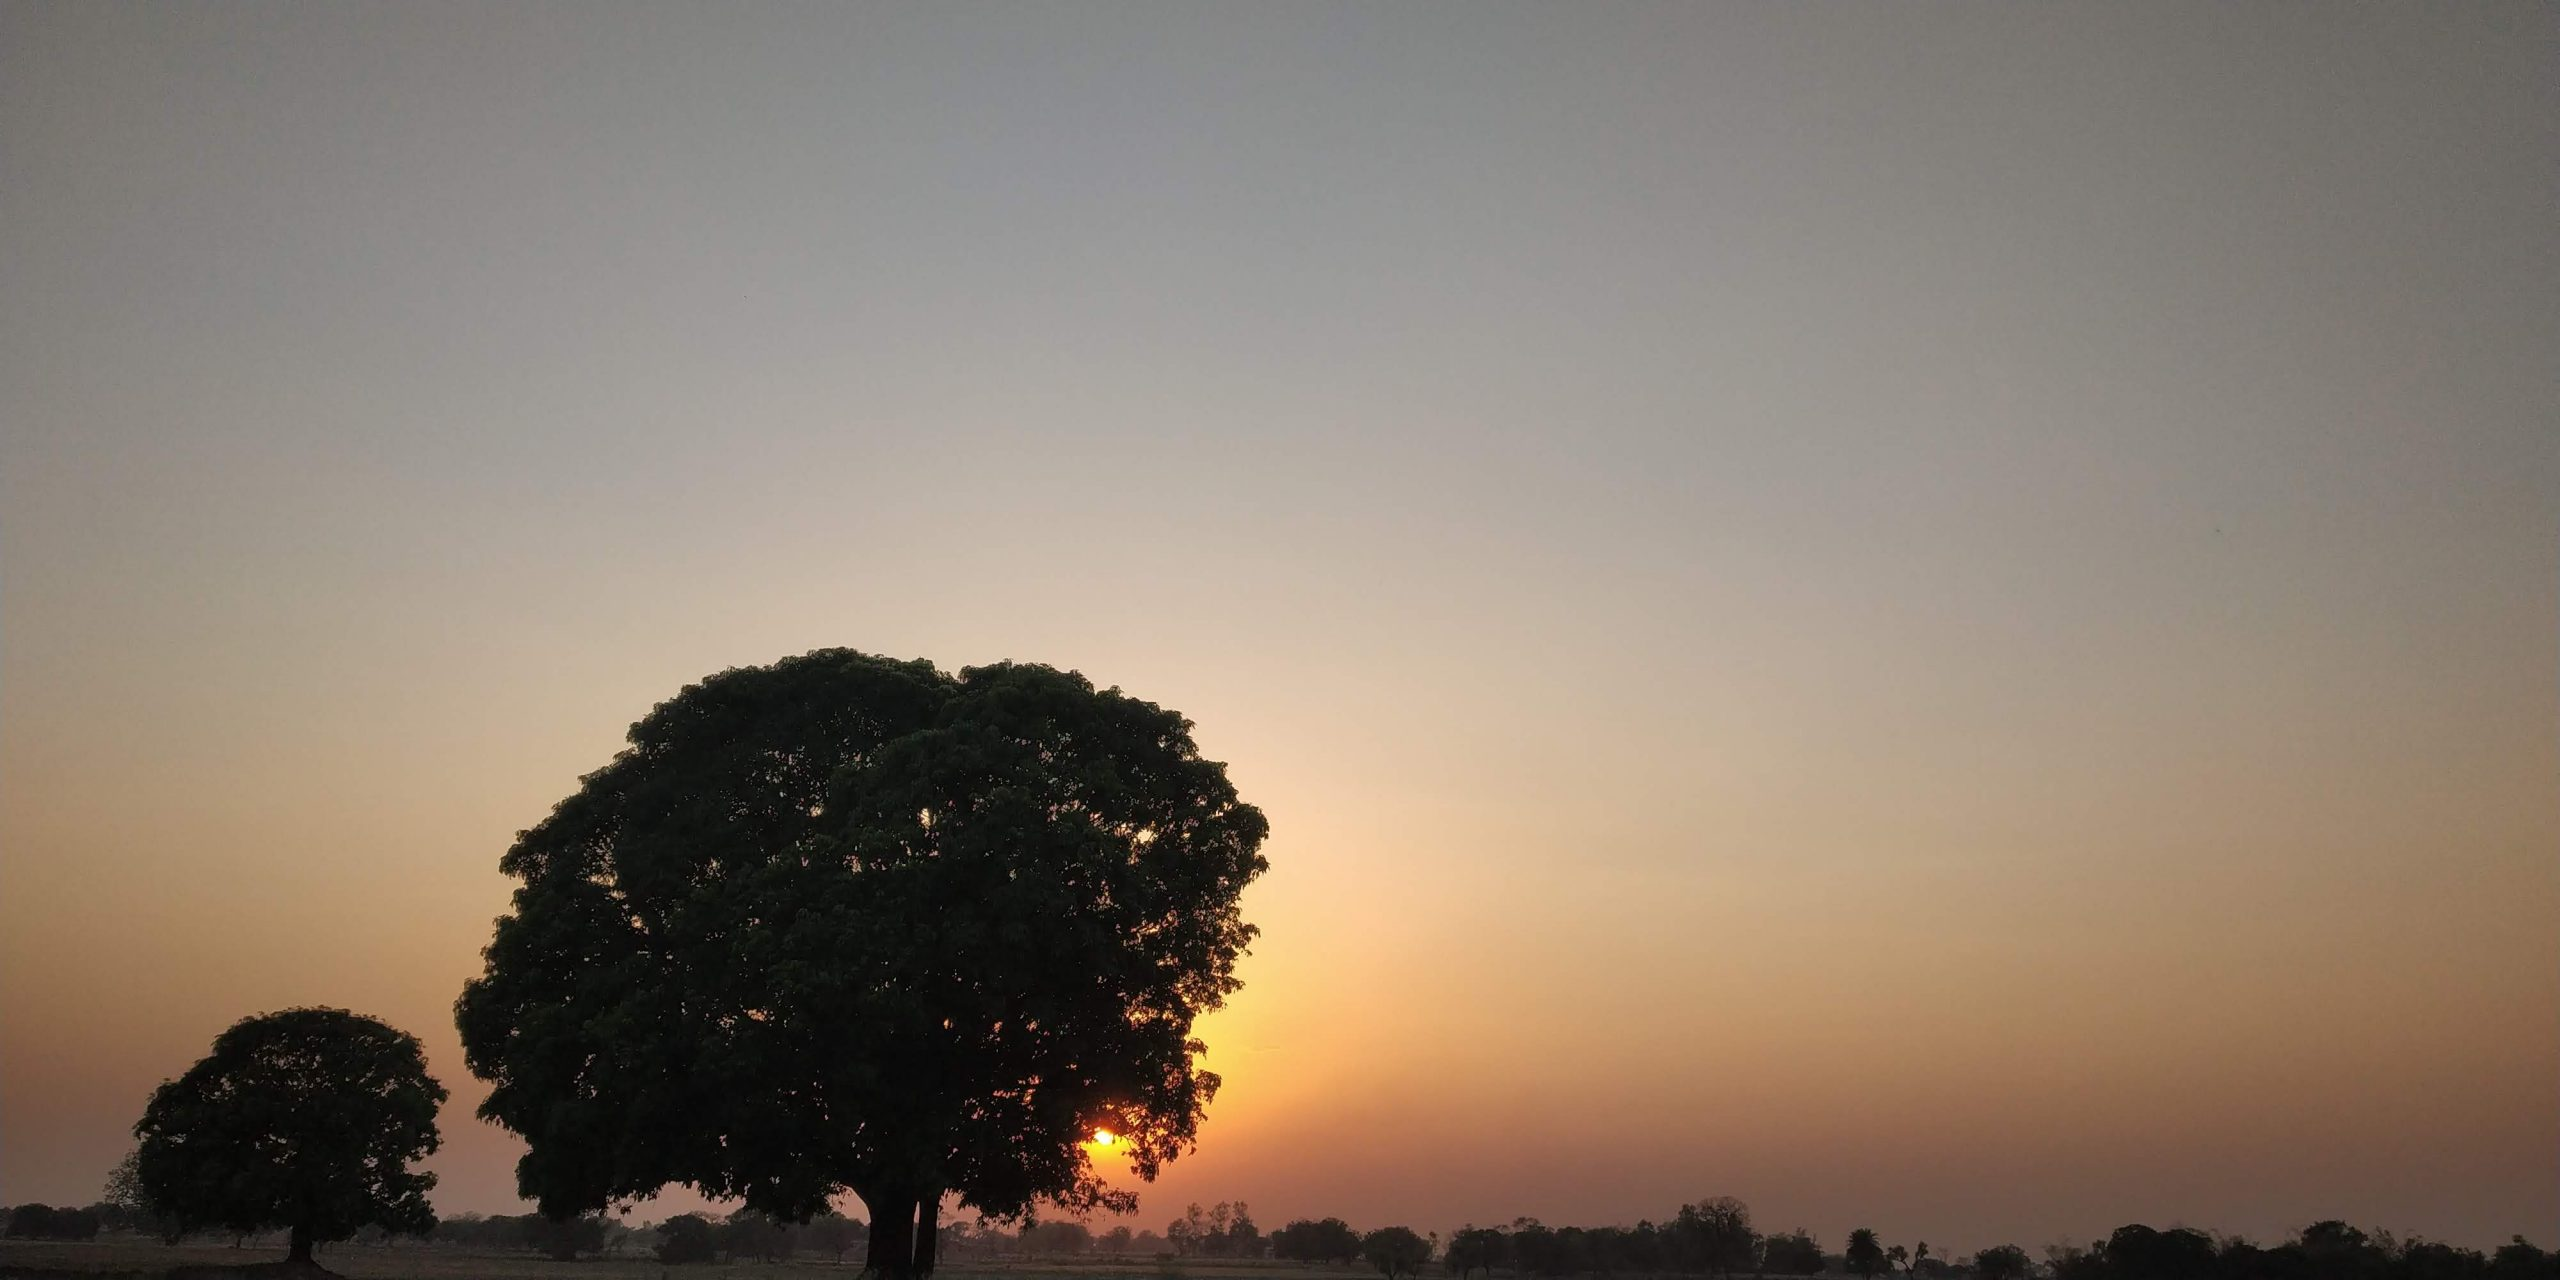 Landscape of skyline, sunset and trees